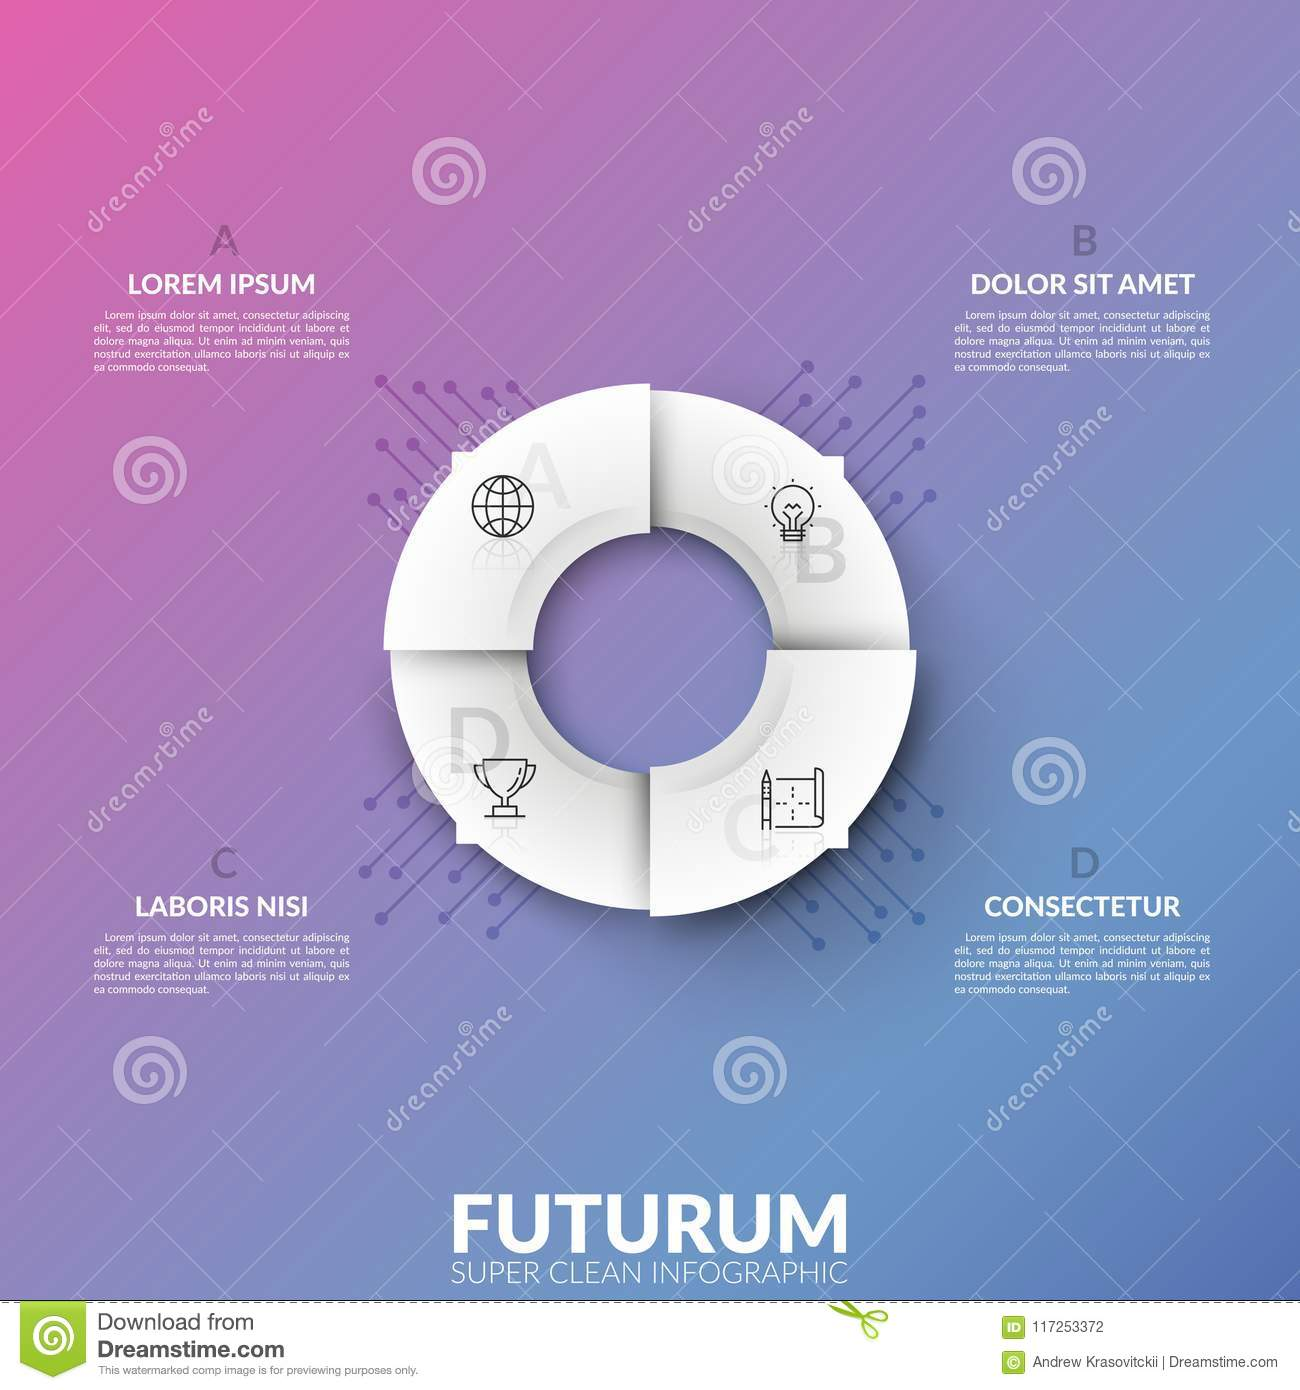 White circular pie chart divided into 4 sectors with thin line pictograms and arrows pointing at lettered text boxes